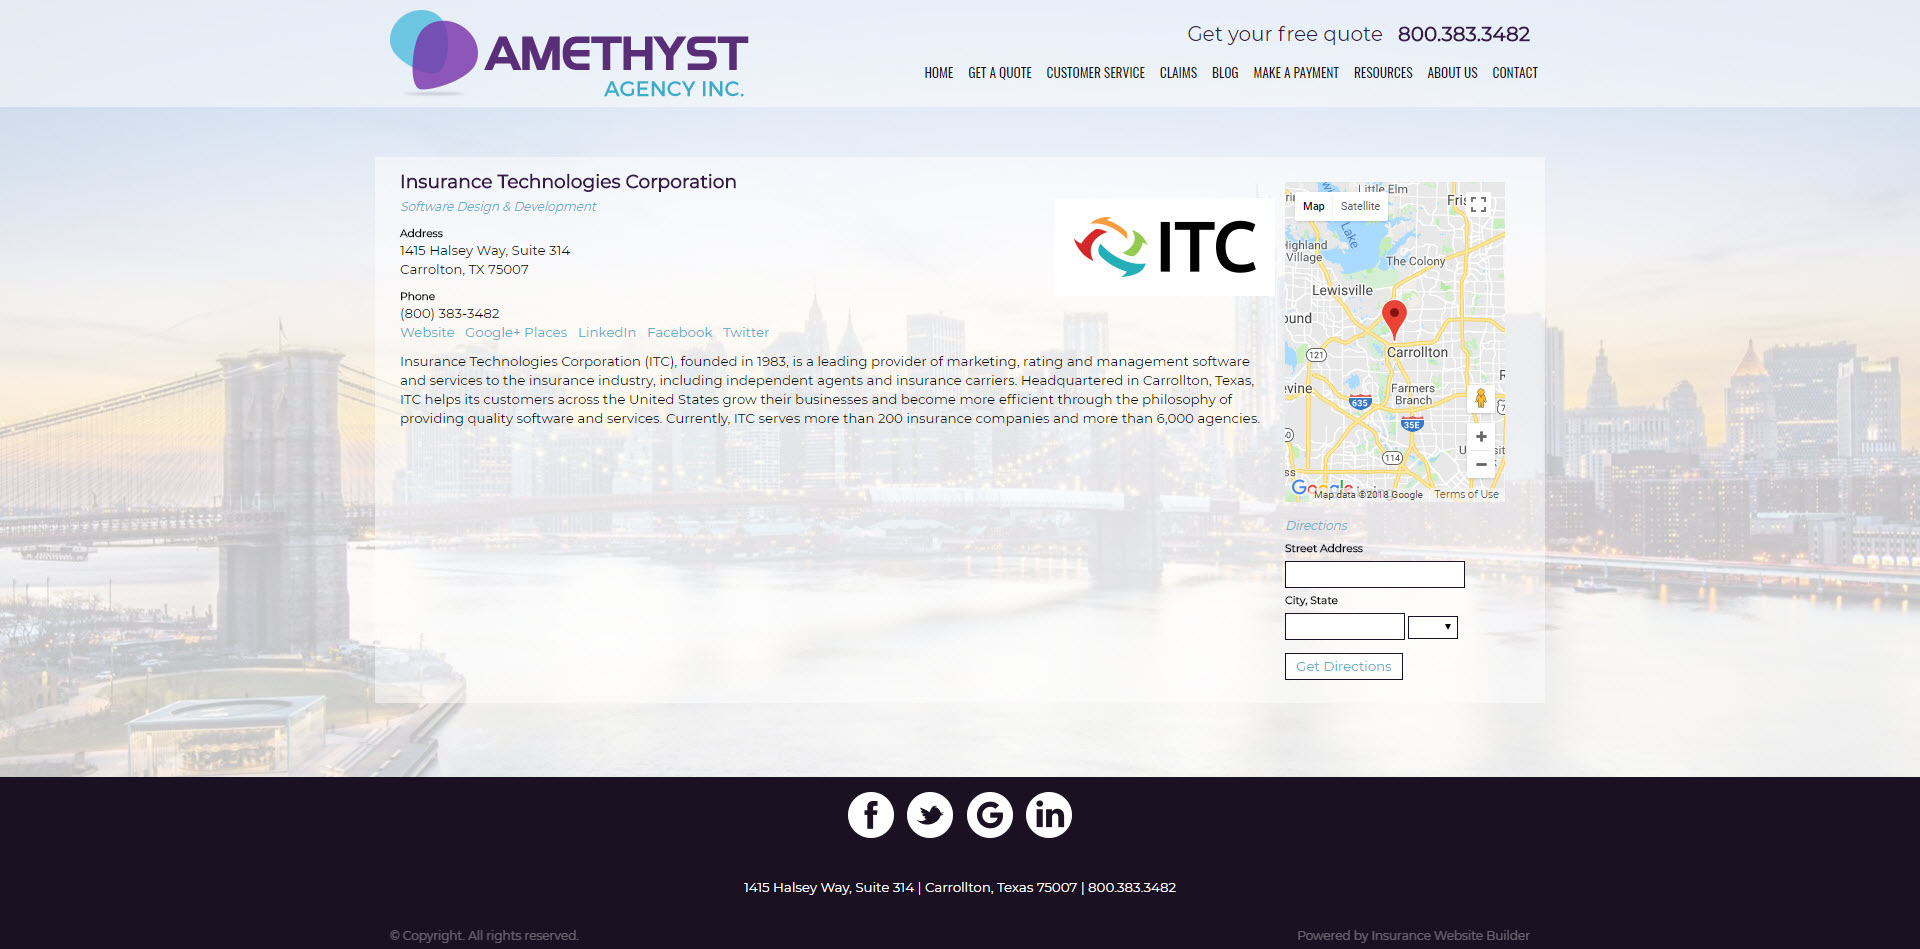 amethyst partner page screenshot ITC